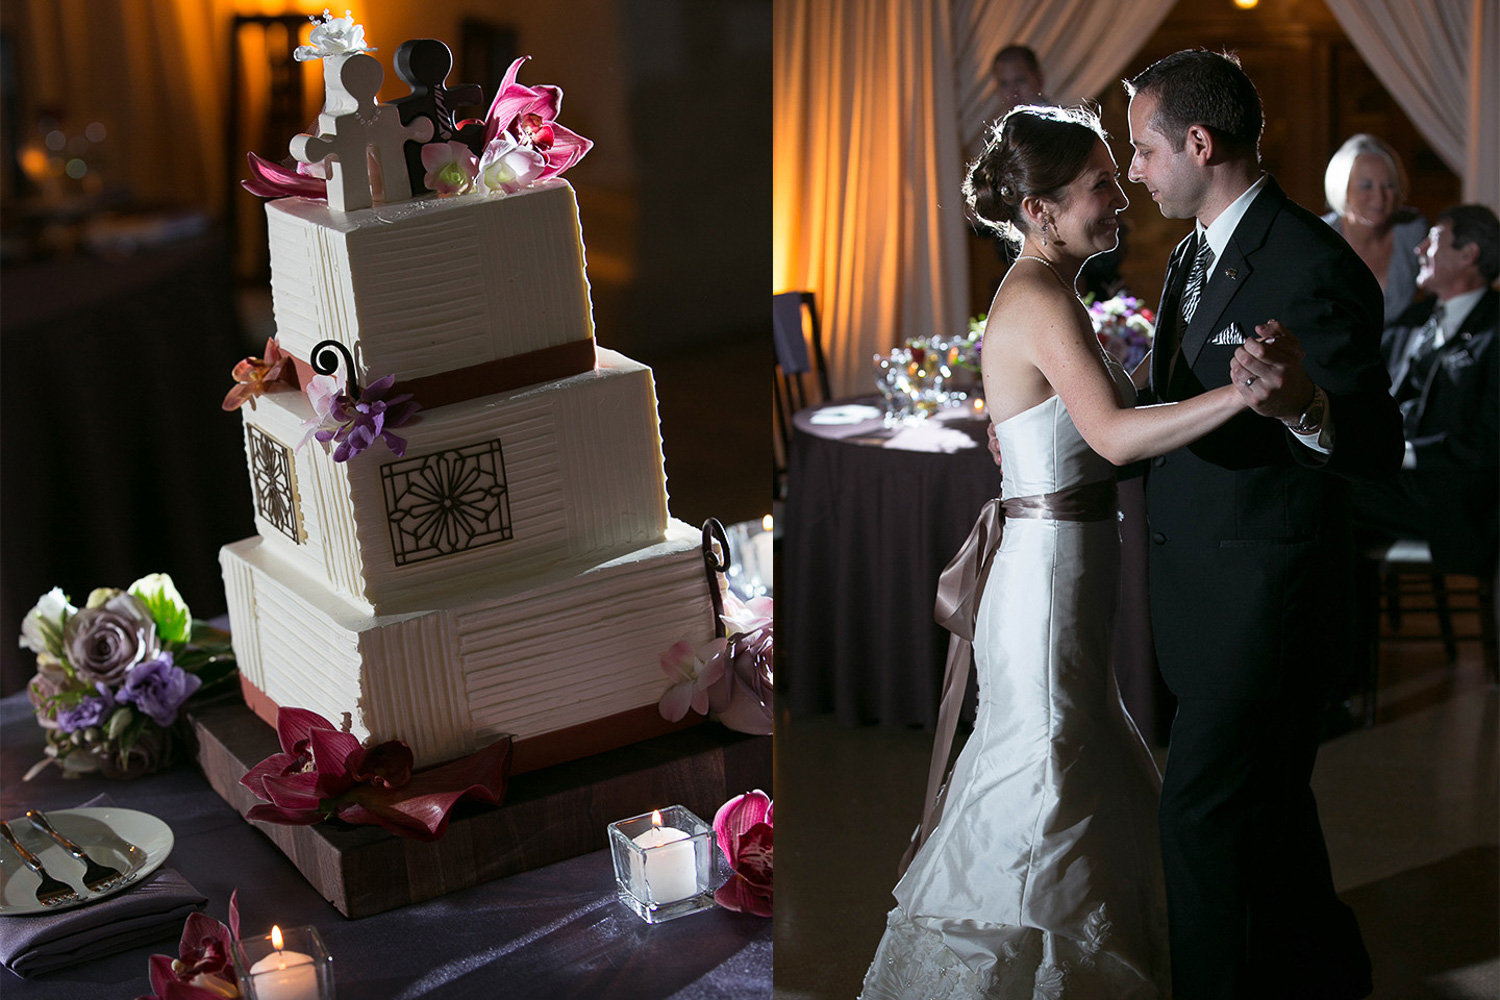 bridal-couple-dancing-at-their-reception-at-the-rookery.jpg